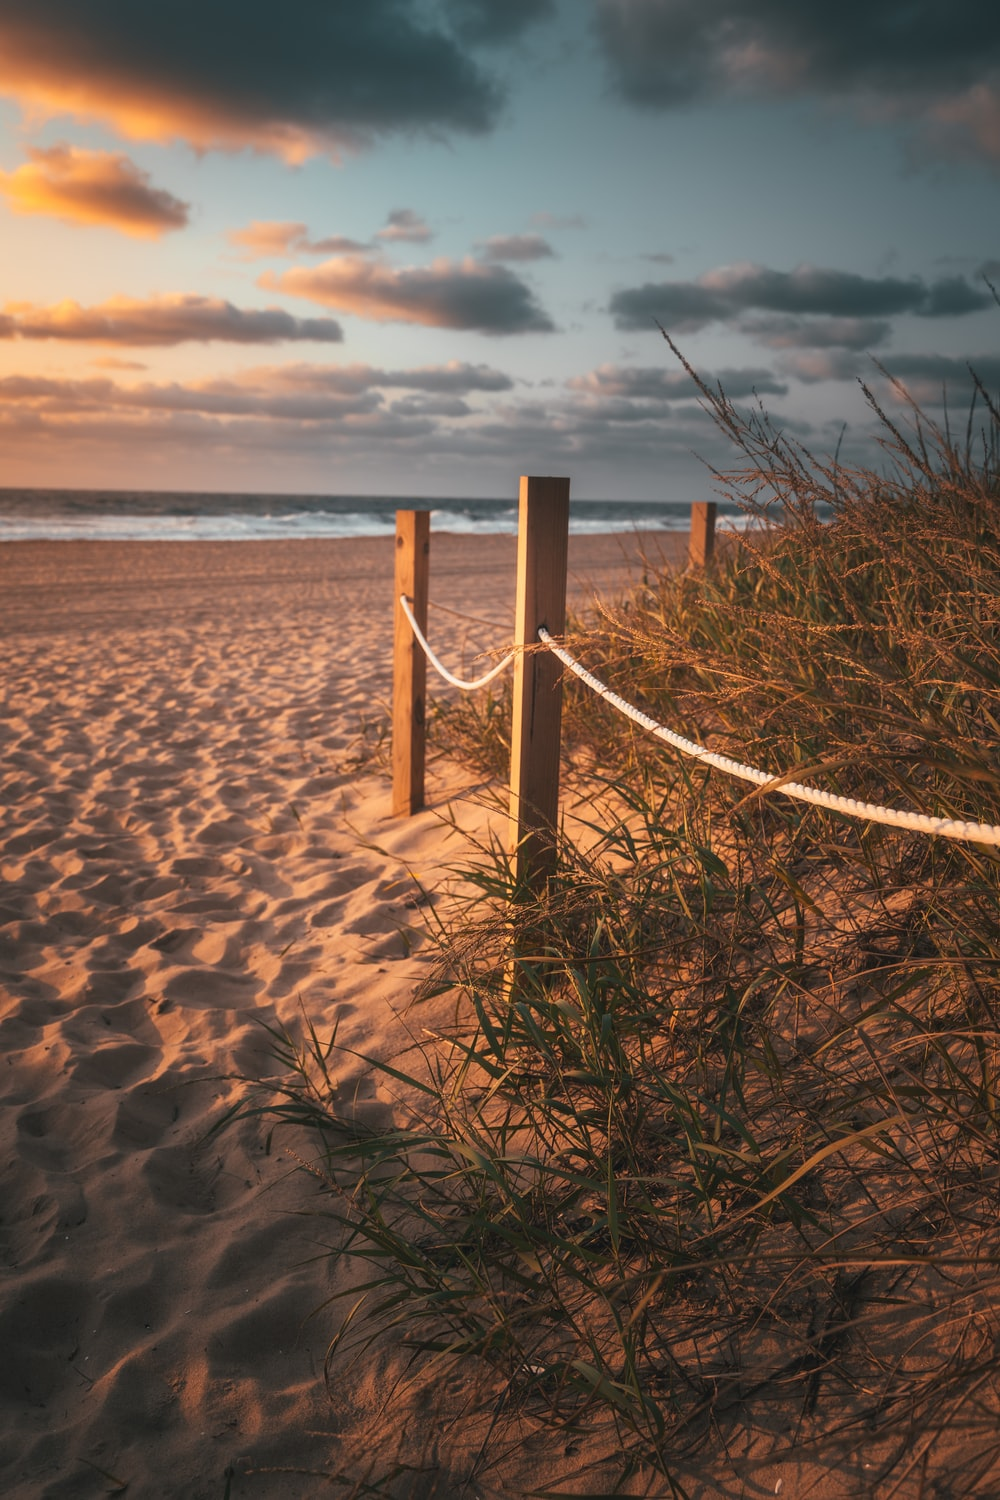 white wooden fence on brown sand near body of water during daytime